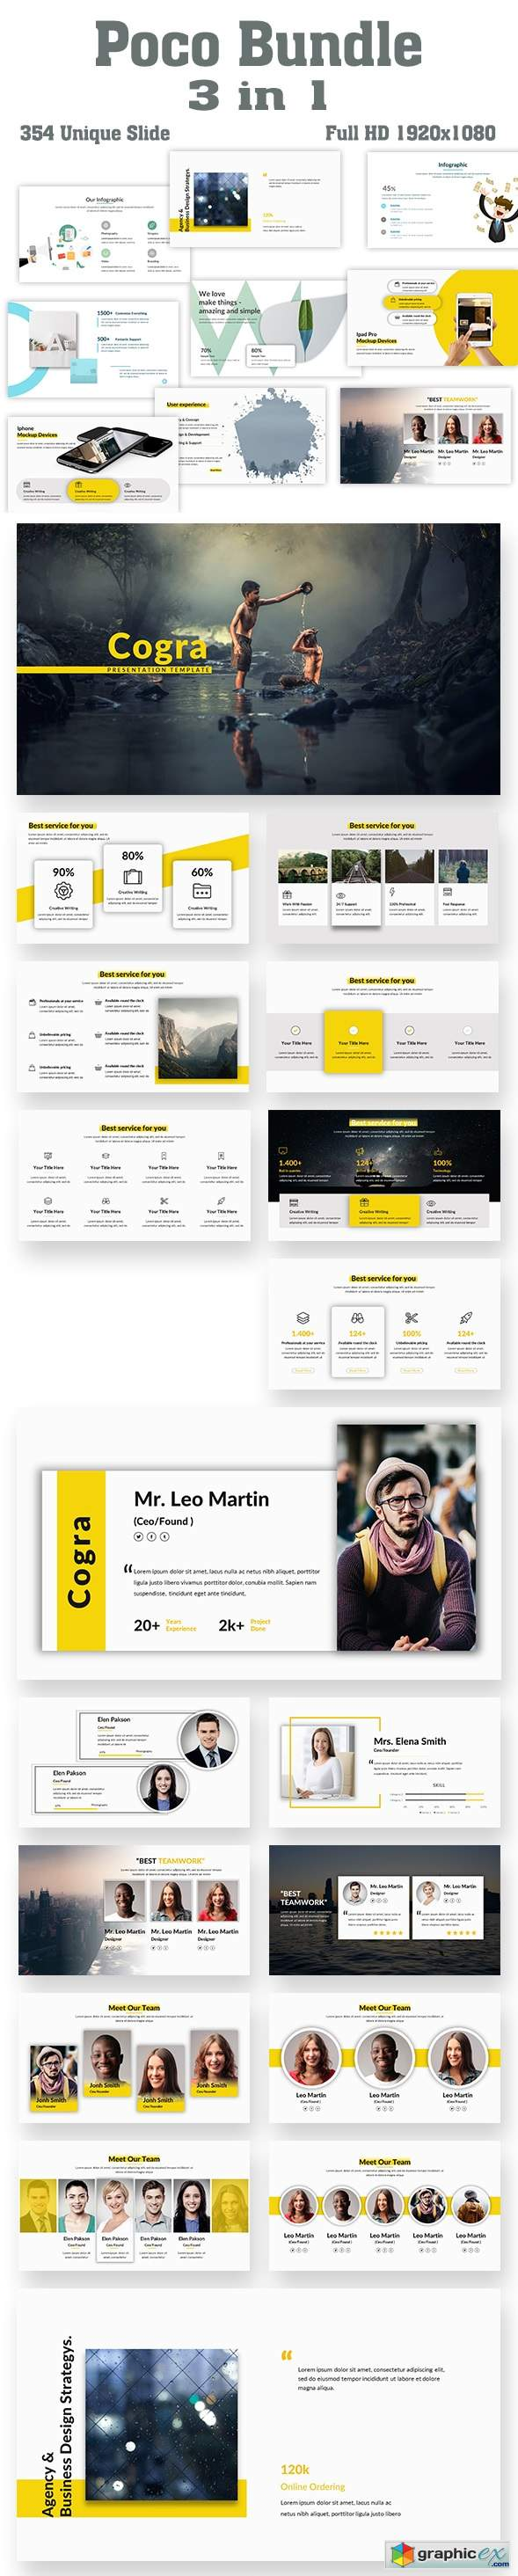 Poco Bundle 3 in 1 PowerPoint Template